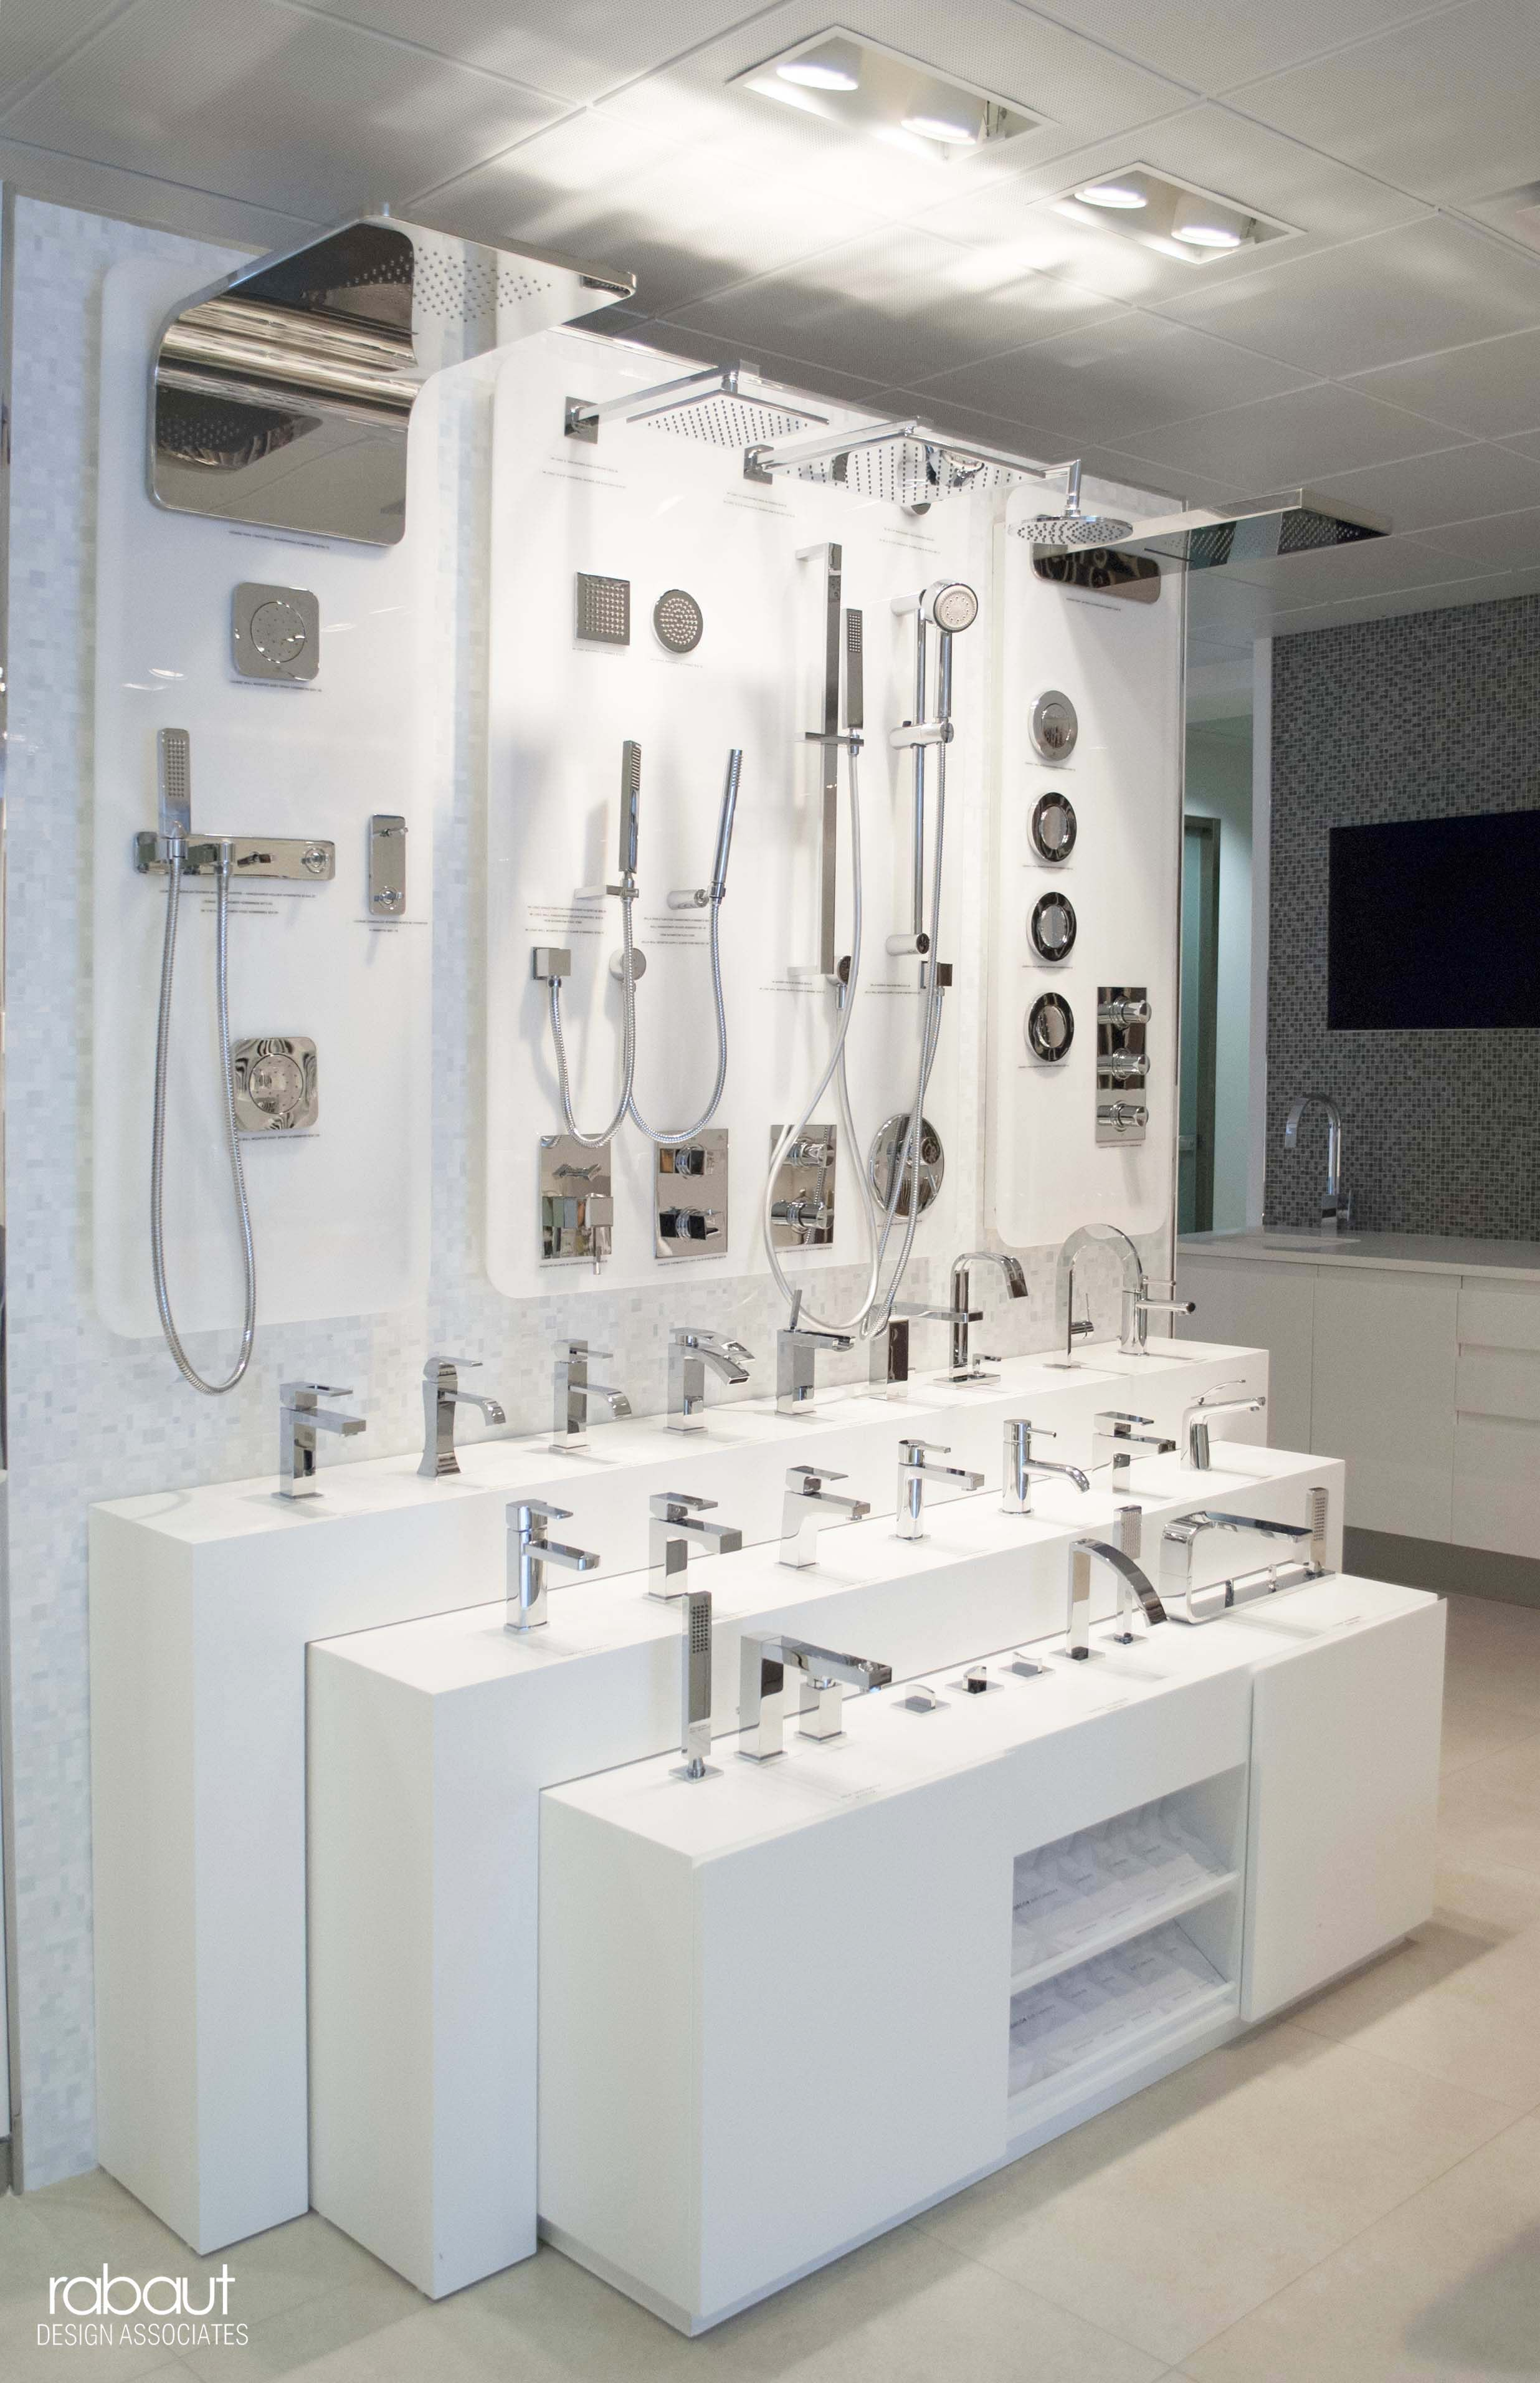 Porcelanosa Showroom by Rabaut Design Associates ...